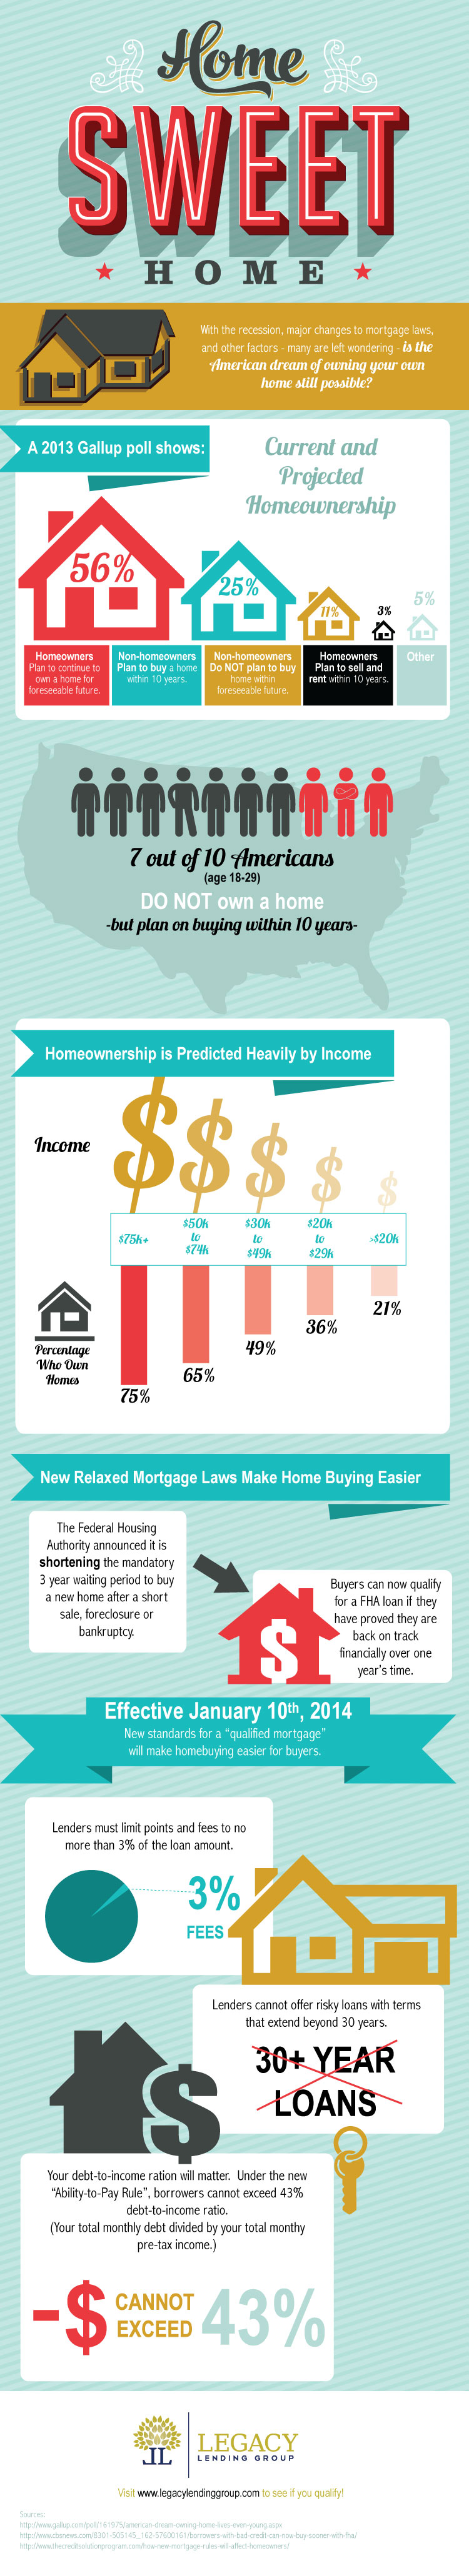 is-home-ownership-still-an-option-in-the-american-dream-infographic